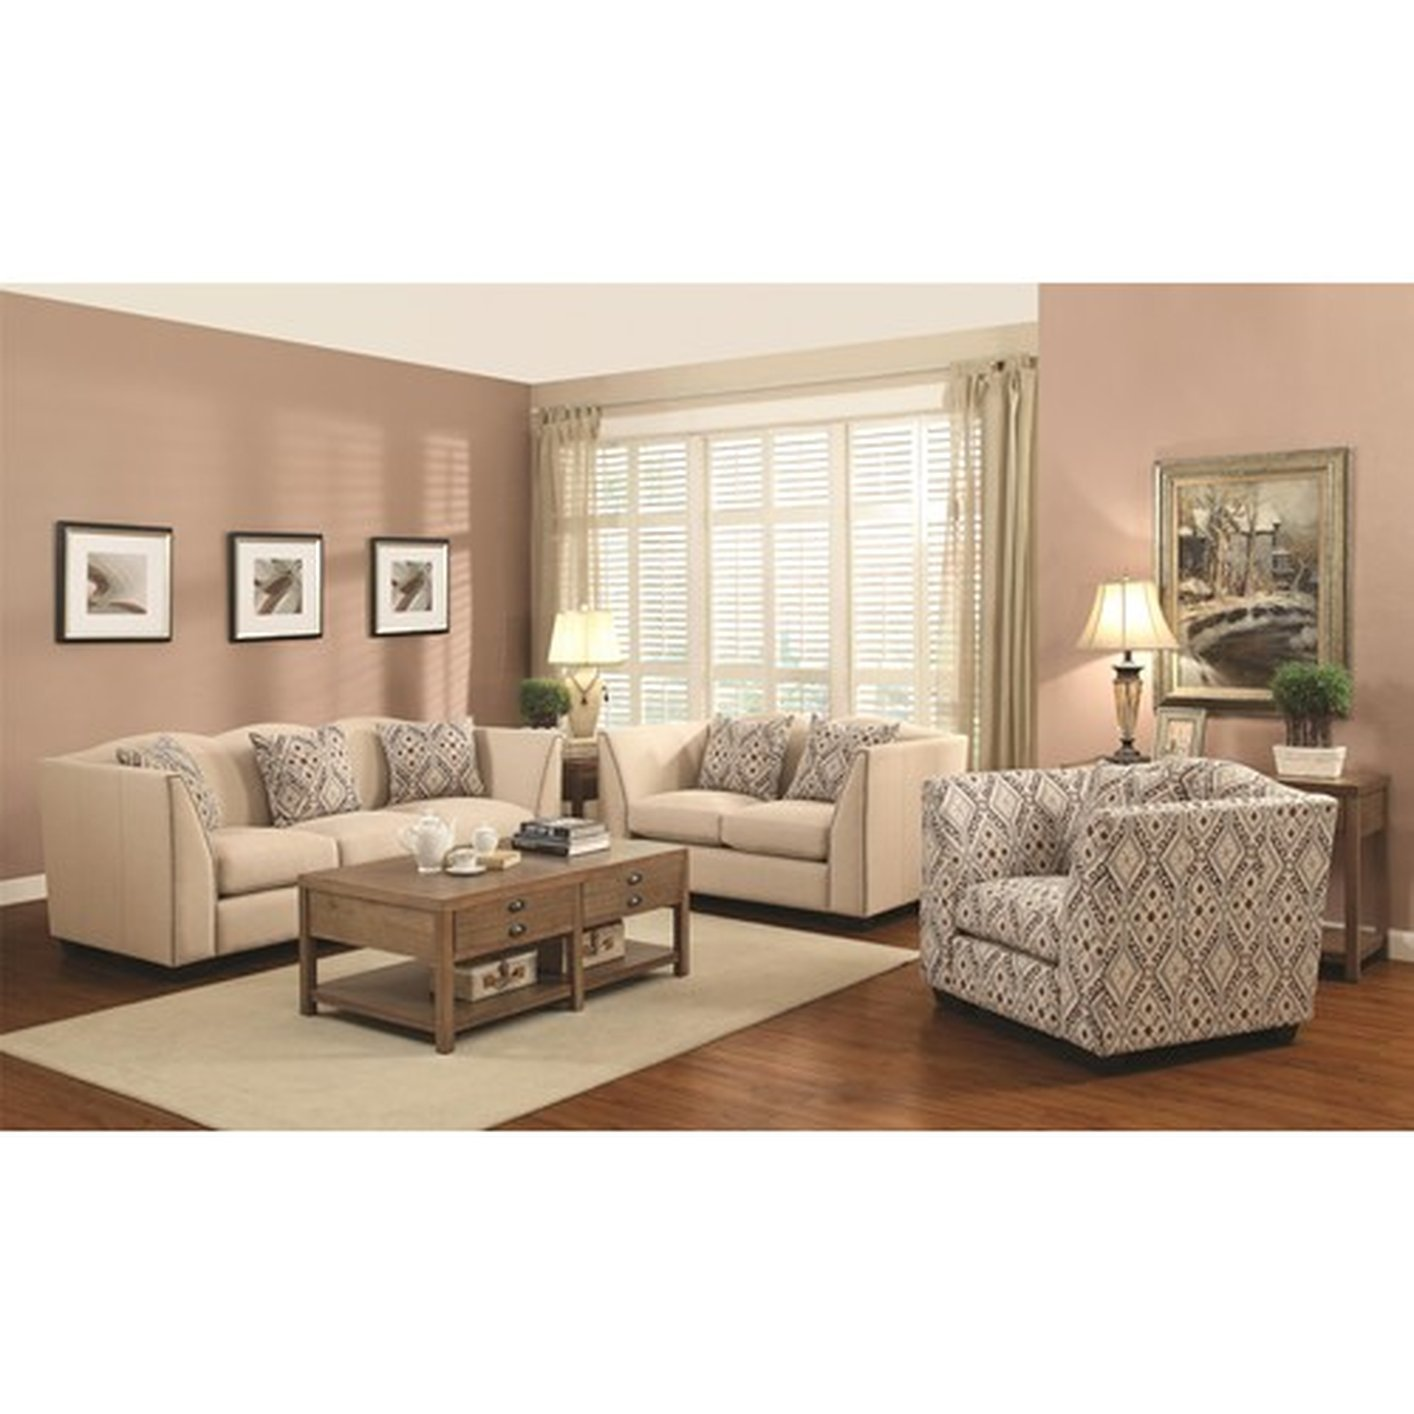 Siana Beige Fabric Accent Chair Steal A Sofa Furniture Outlet